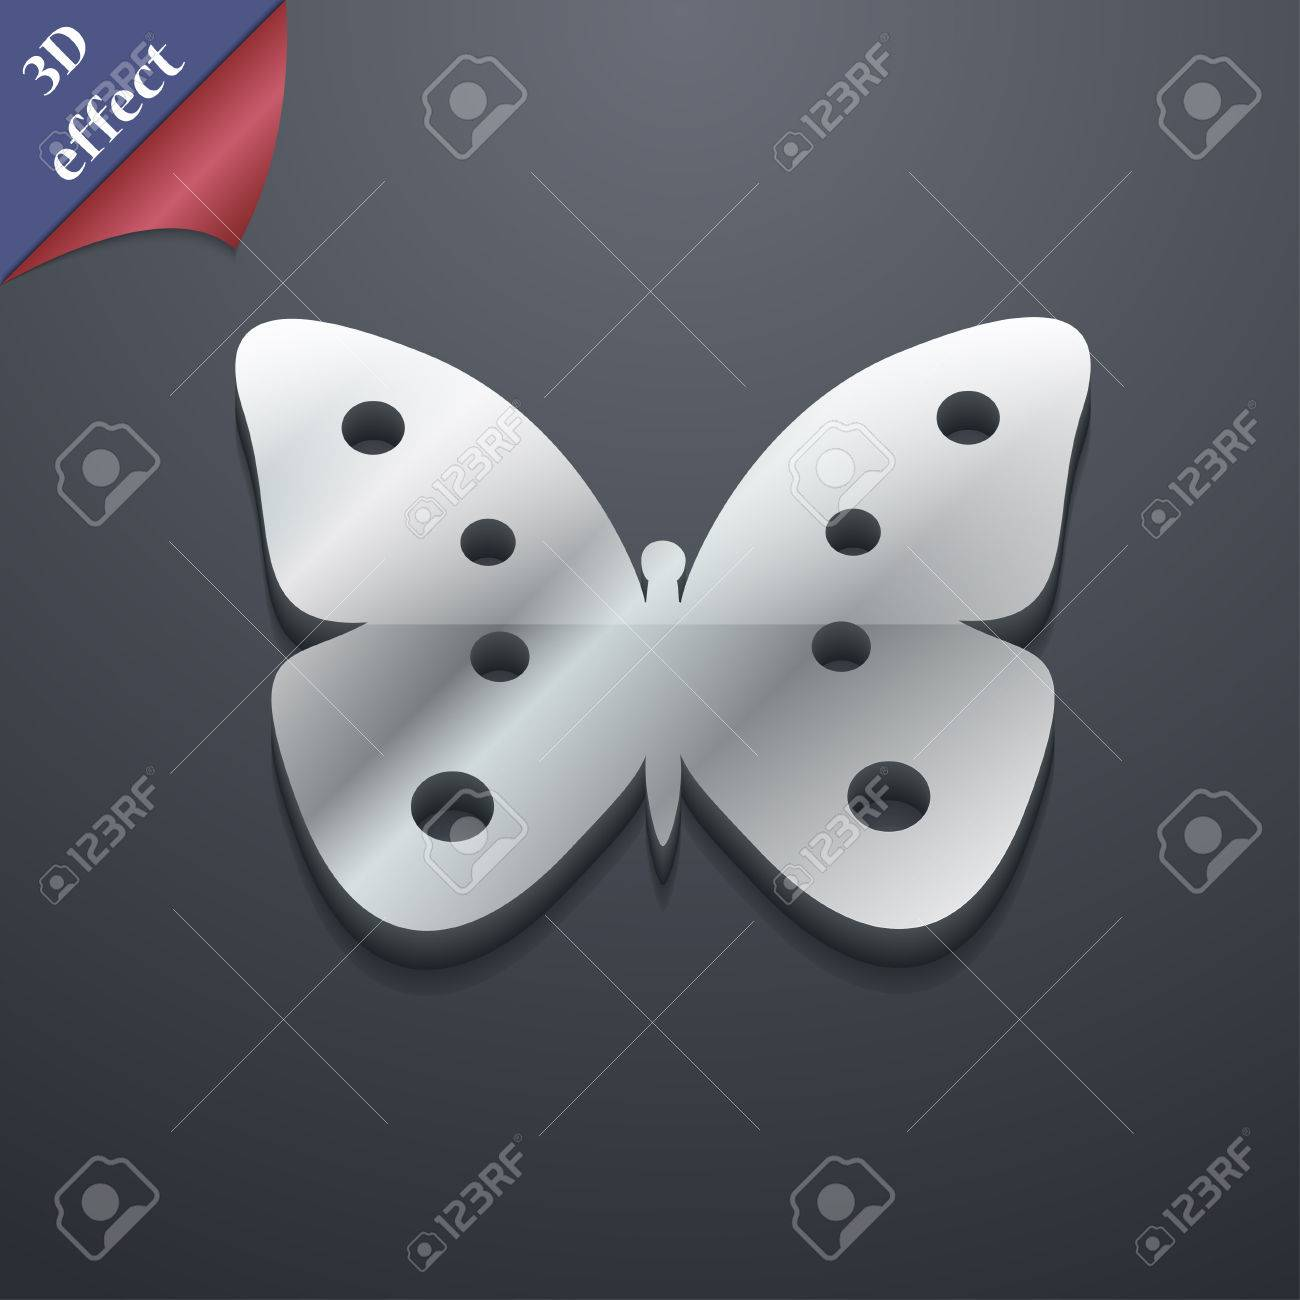 Butterfly icon symbol 3d style trendy modern design with space butterfly icon symbol 3d style trendy modern design with space for your text biocorpaavc Images